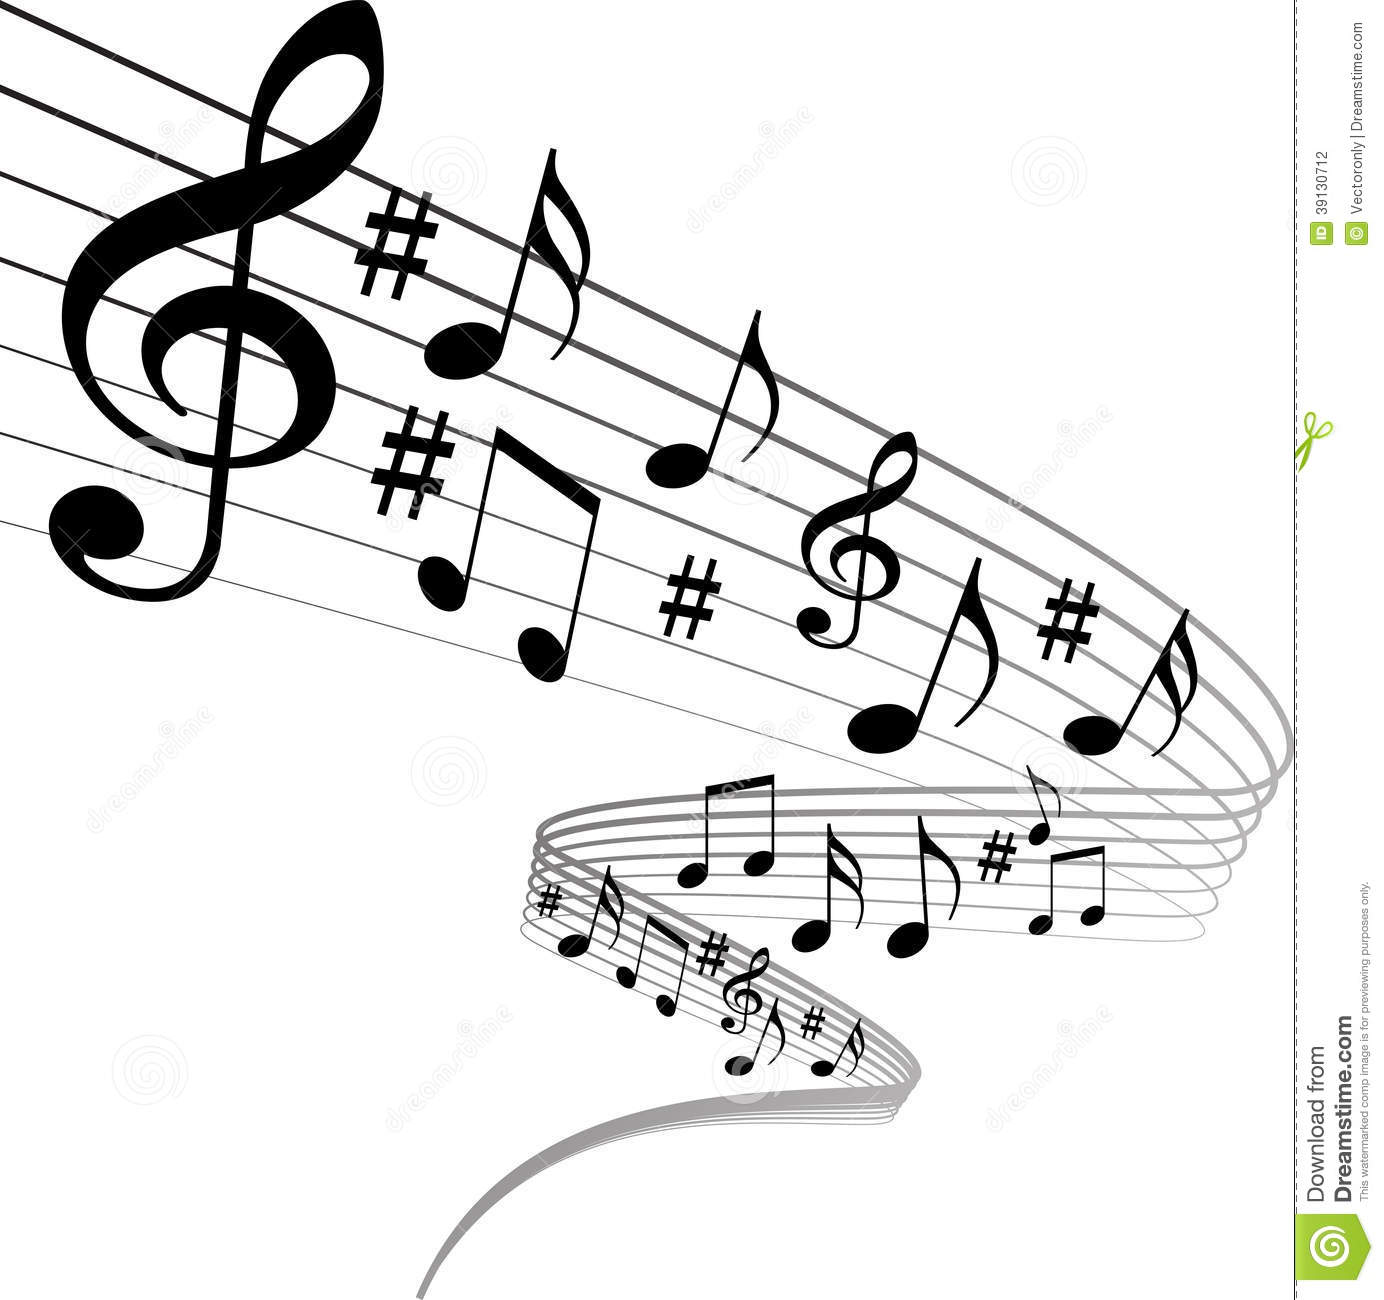 Music notes stock vector. Image of brush, backdrop, disco